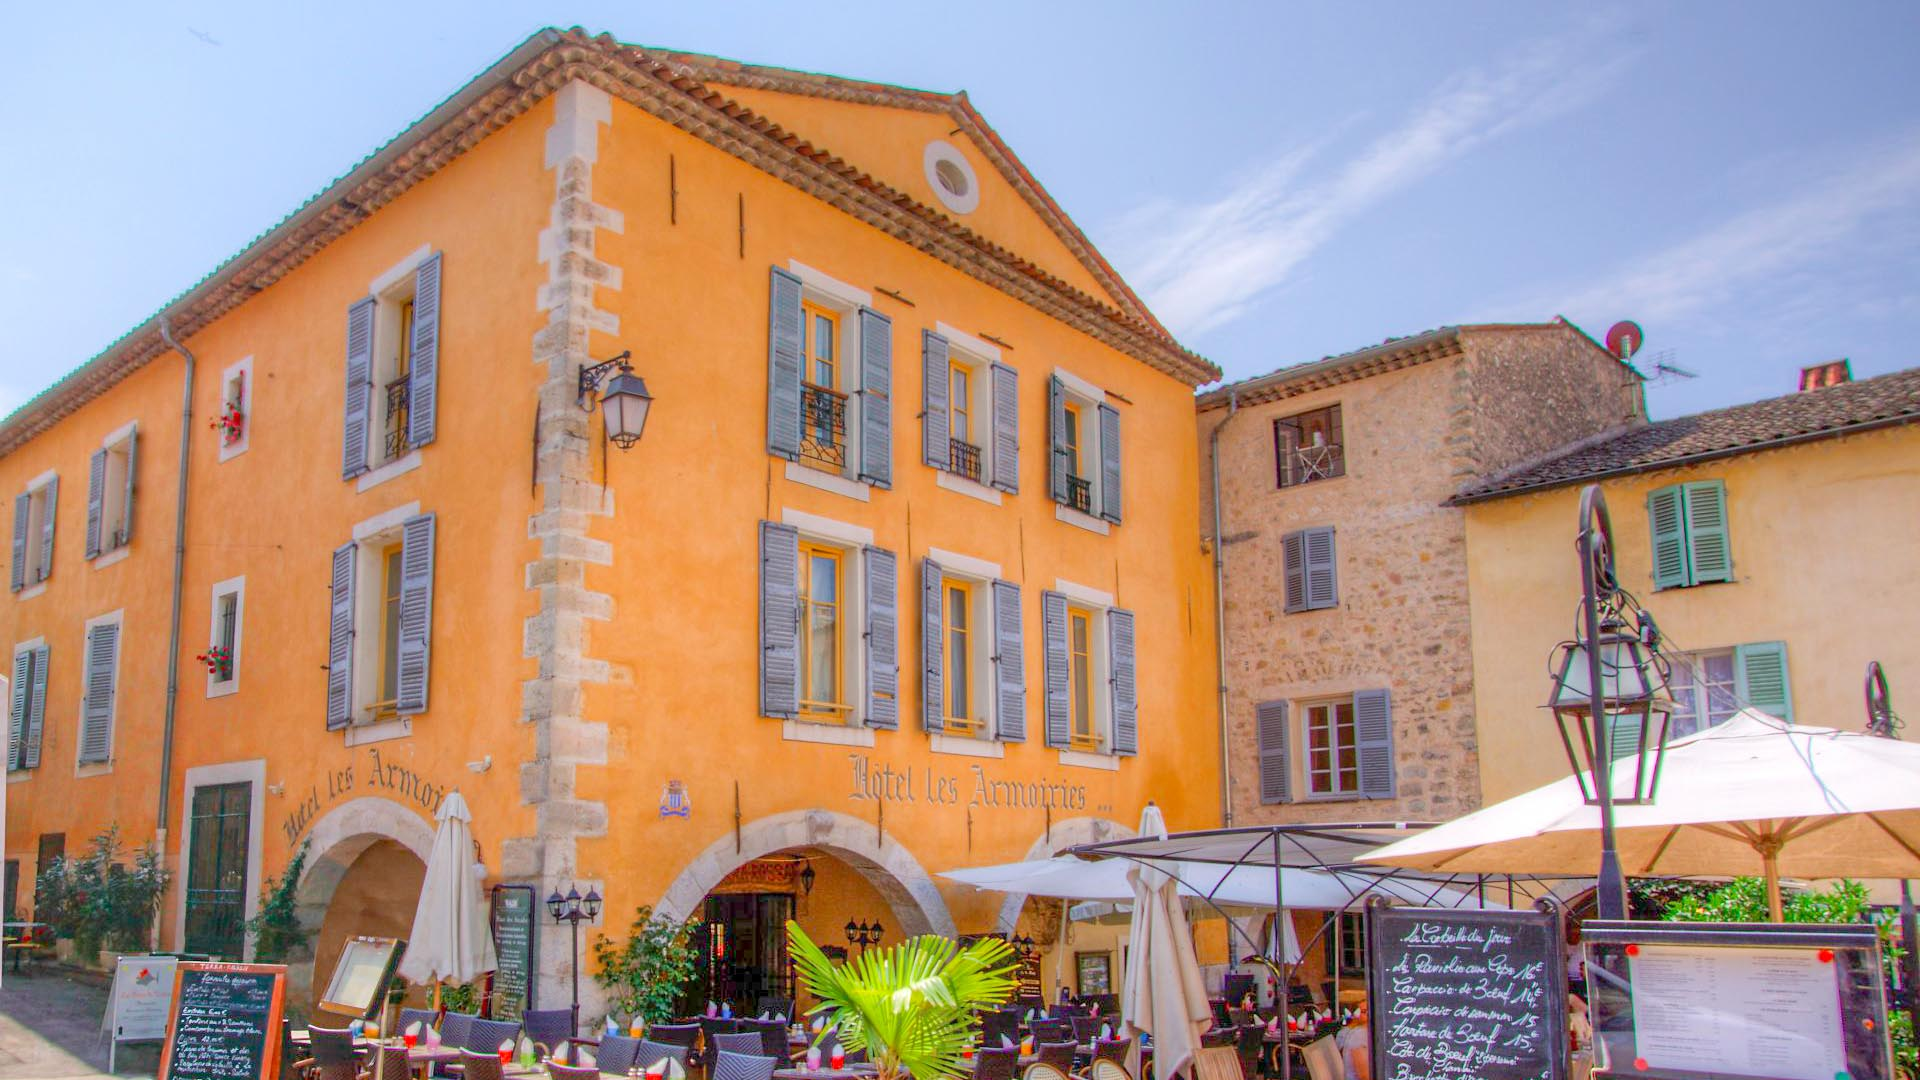 beautiful old style building in Fayence. Square where you can find many of the town restaurants.